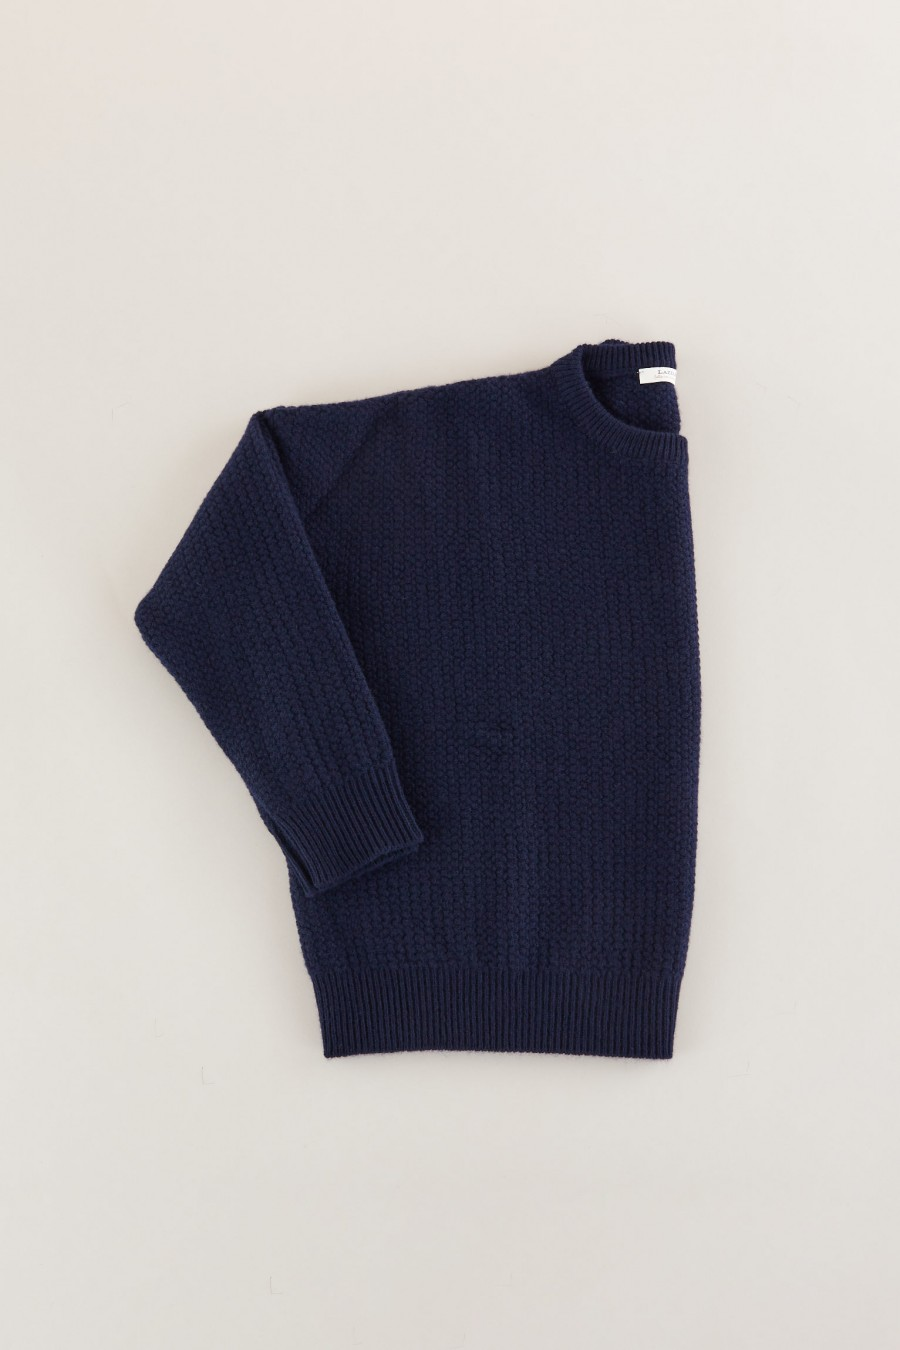 Blue knitted woolen jumper